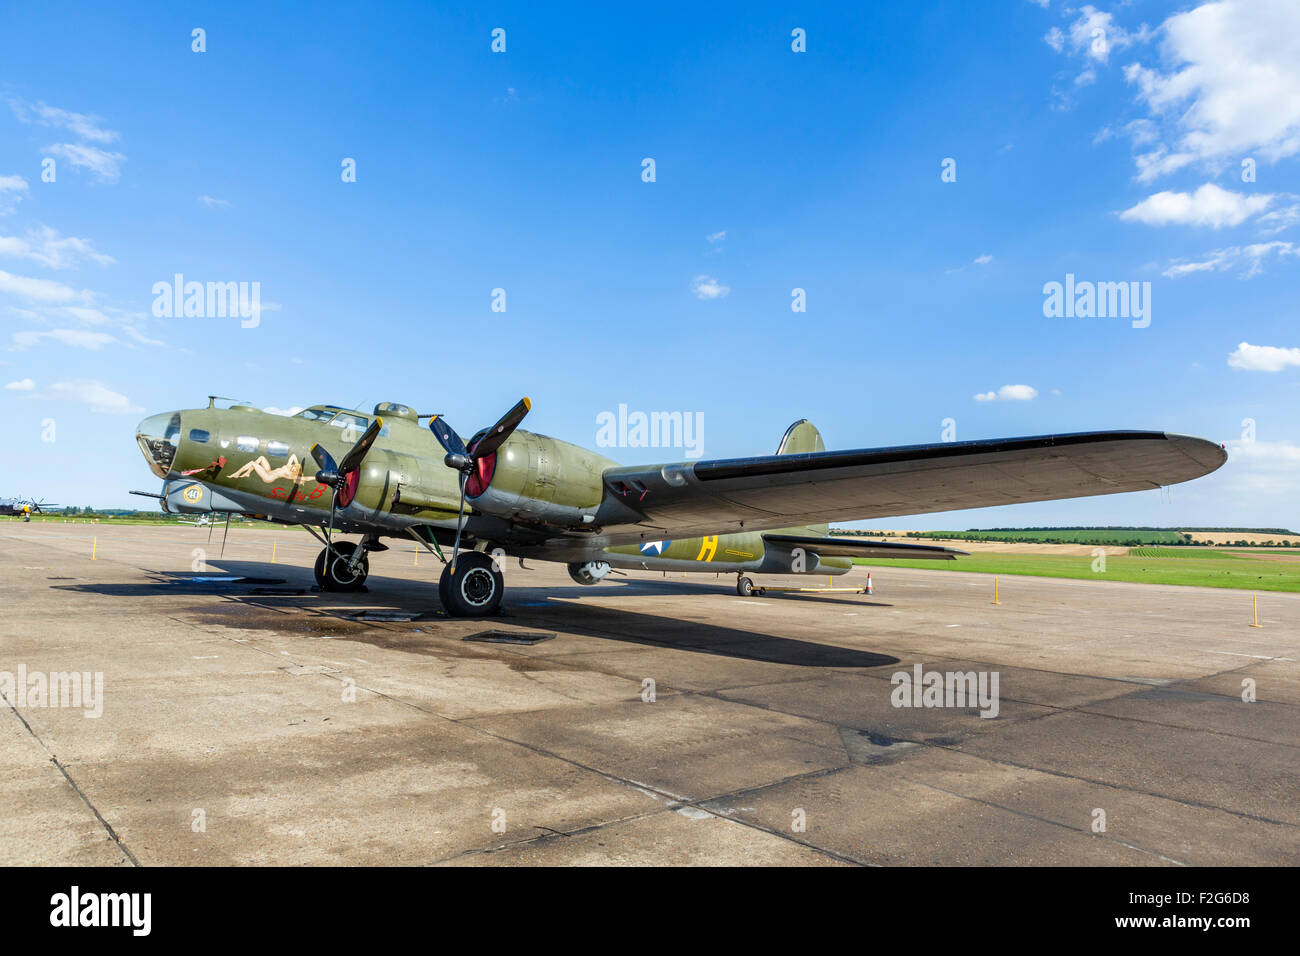 """Boeing B-17G Flying Fortress """"Sally B"""" at the Imperial War Museum, Duxford, Cambridgeshire, England, UK Stock Photo"""